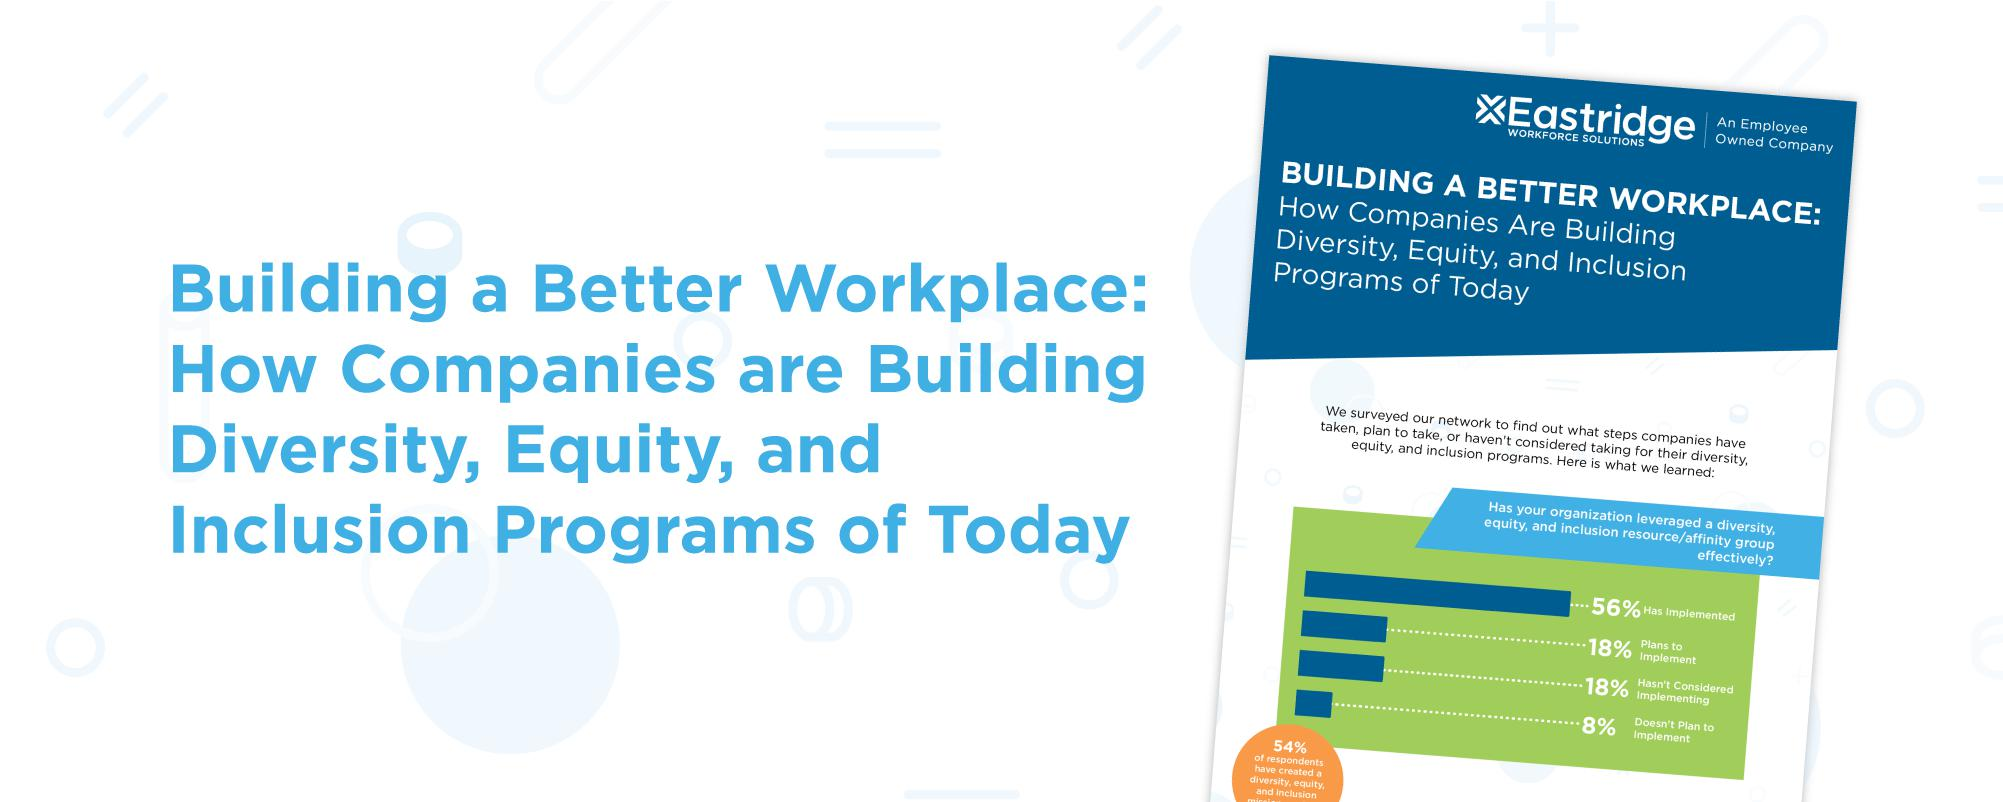 Building a Better Workplace: How Companies Are Building Diversity, Equity, and Inclusion Programs of Today